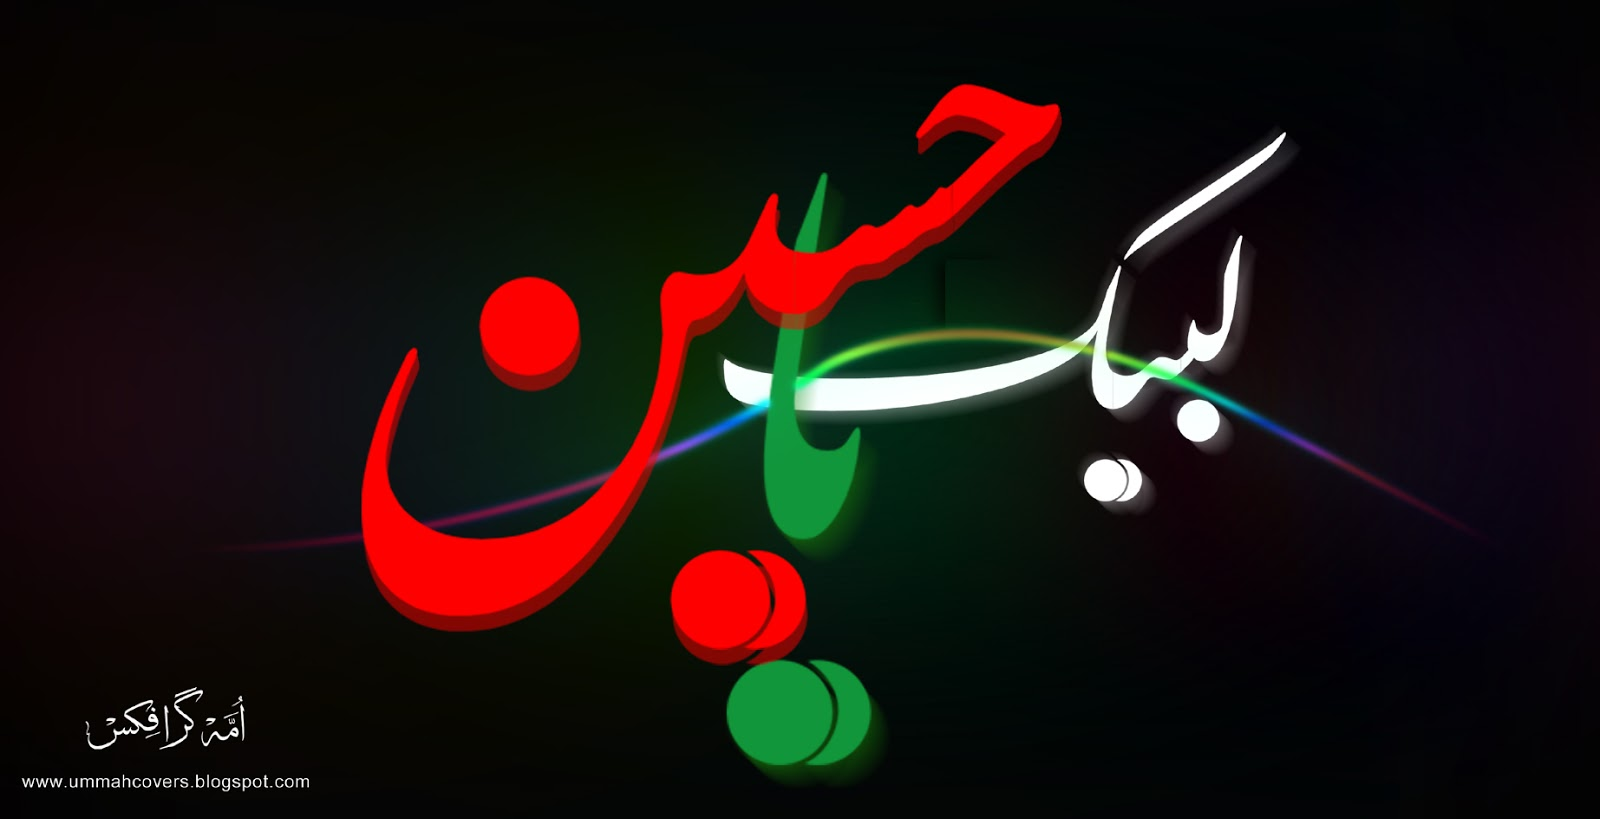 Ya Hussain Wallpapers Hd  Free Download Wallpaper